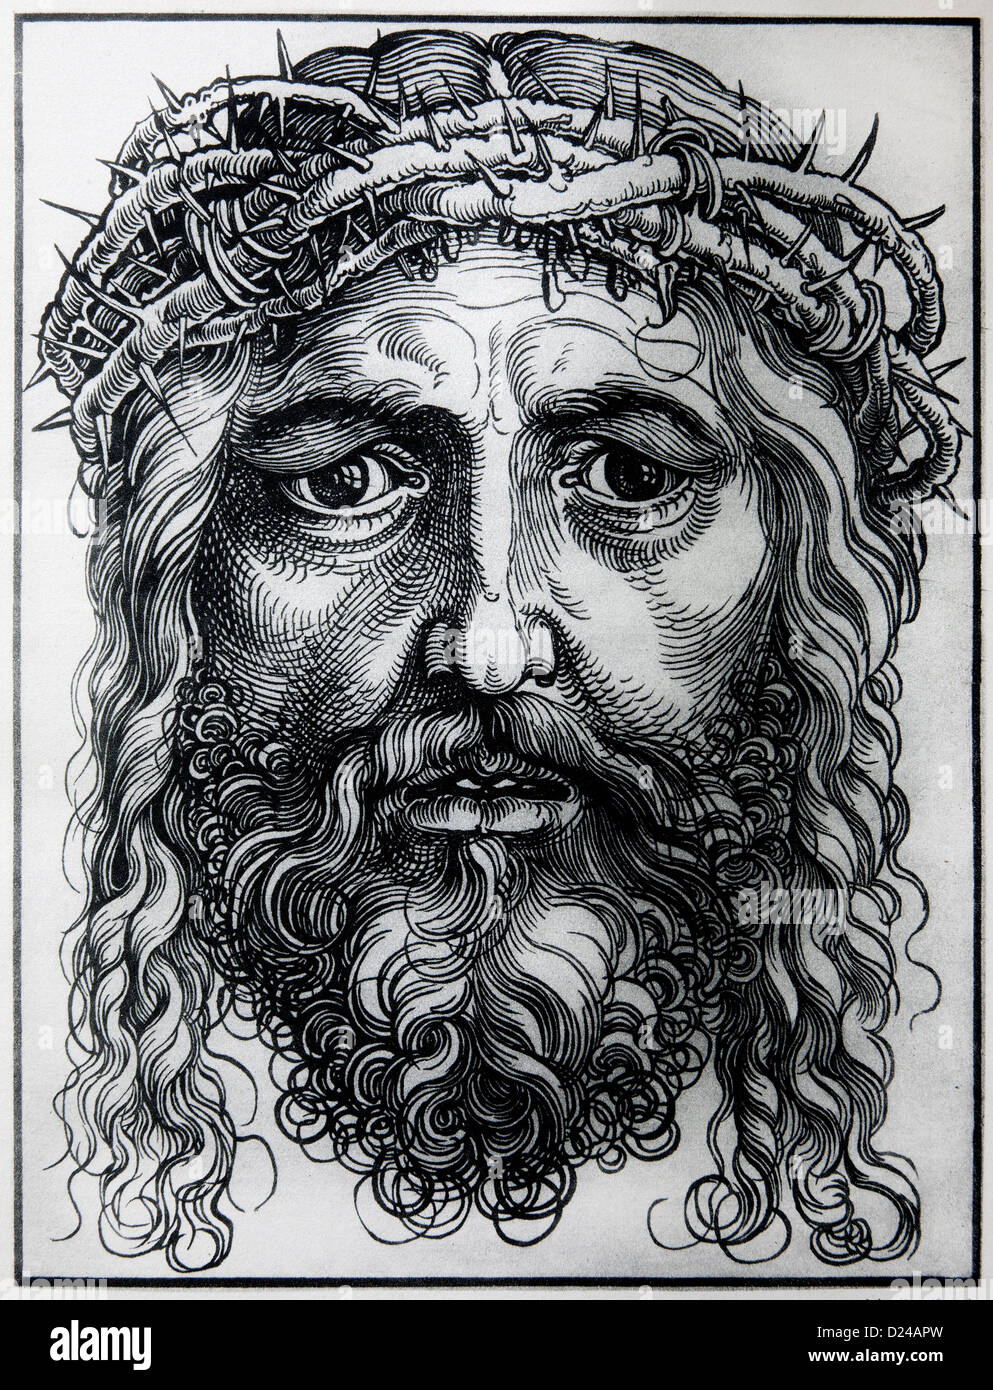 GERMANY - 1928: Lithography of Head of Jesus Christ by Albert Durer. - Stock Image